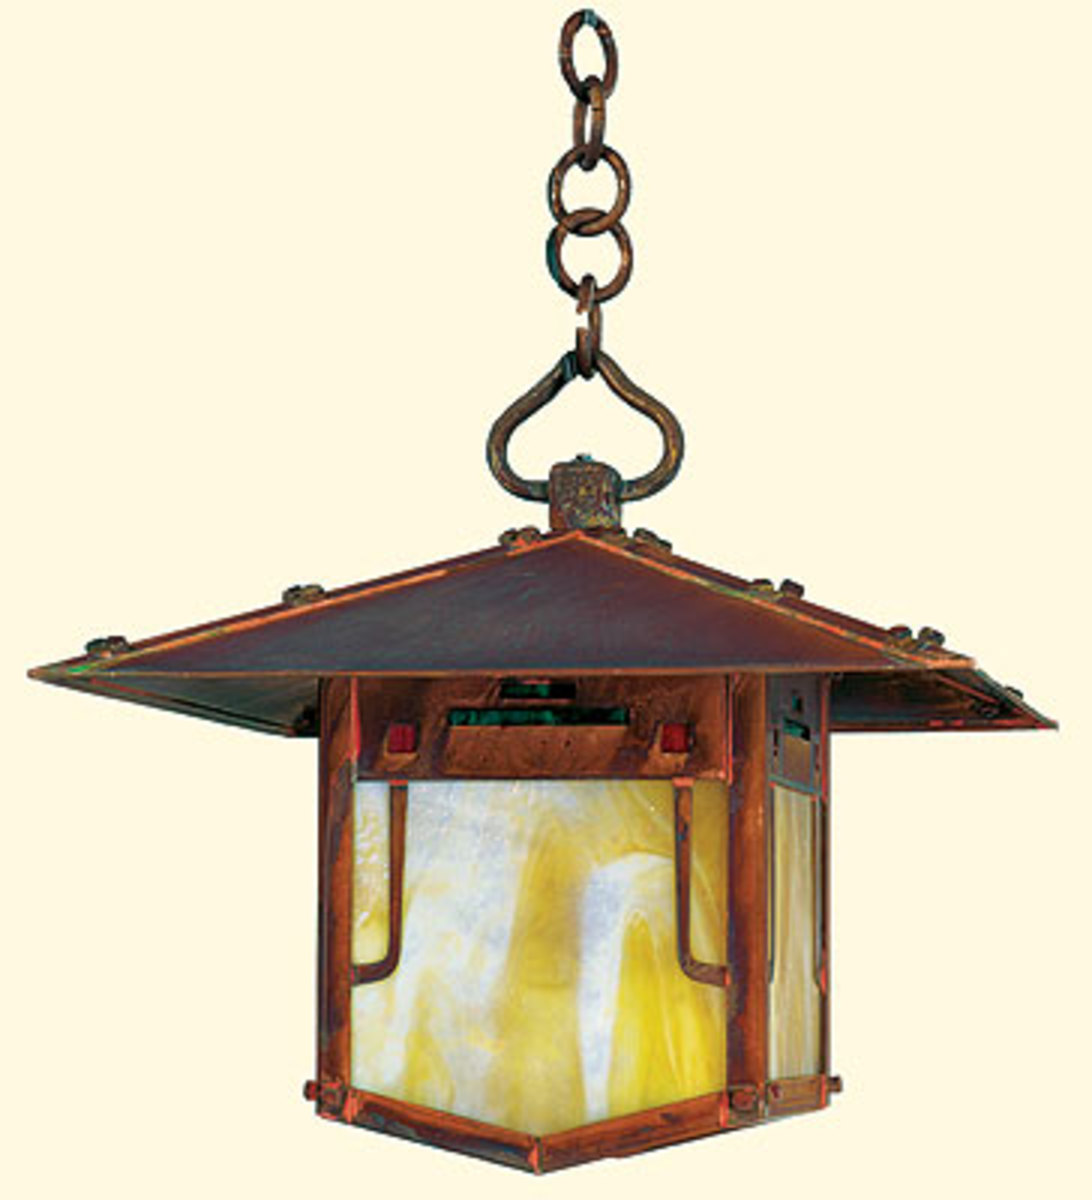 lamps lighting inside and out